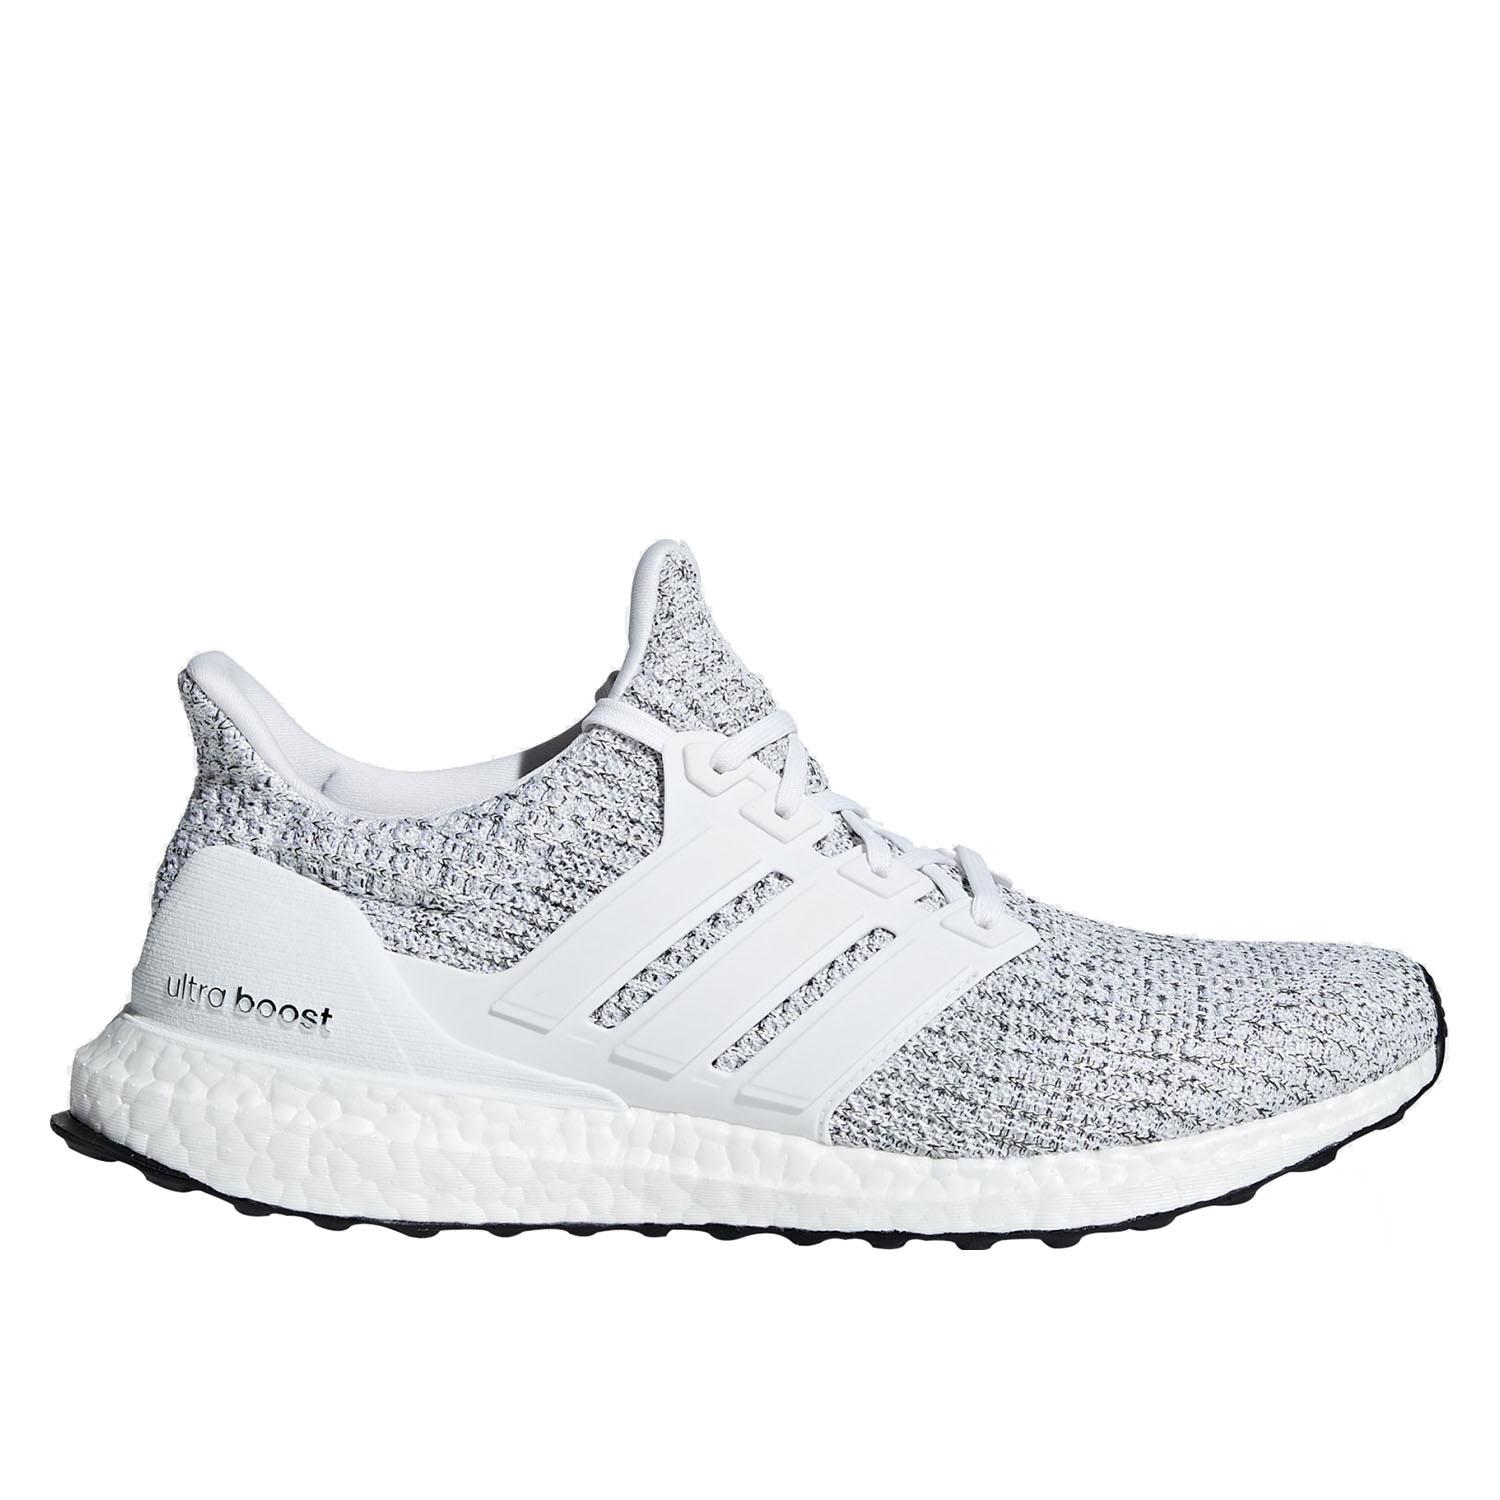 outlet store 1f217 93079 adidas Ultra BOOST 4.0 Men's Running Shoe